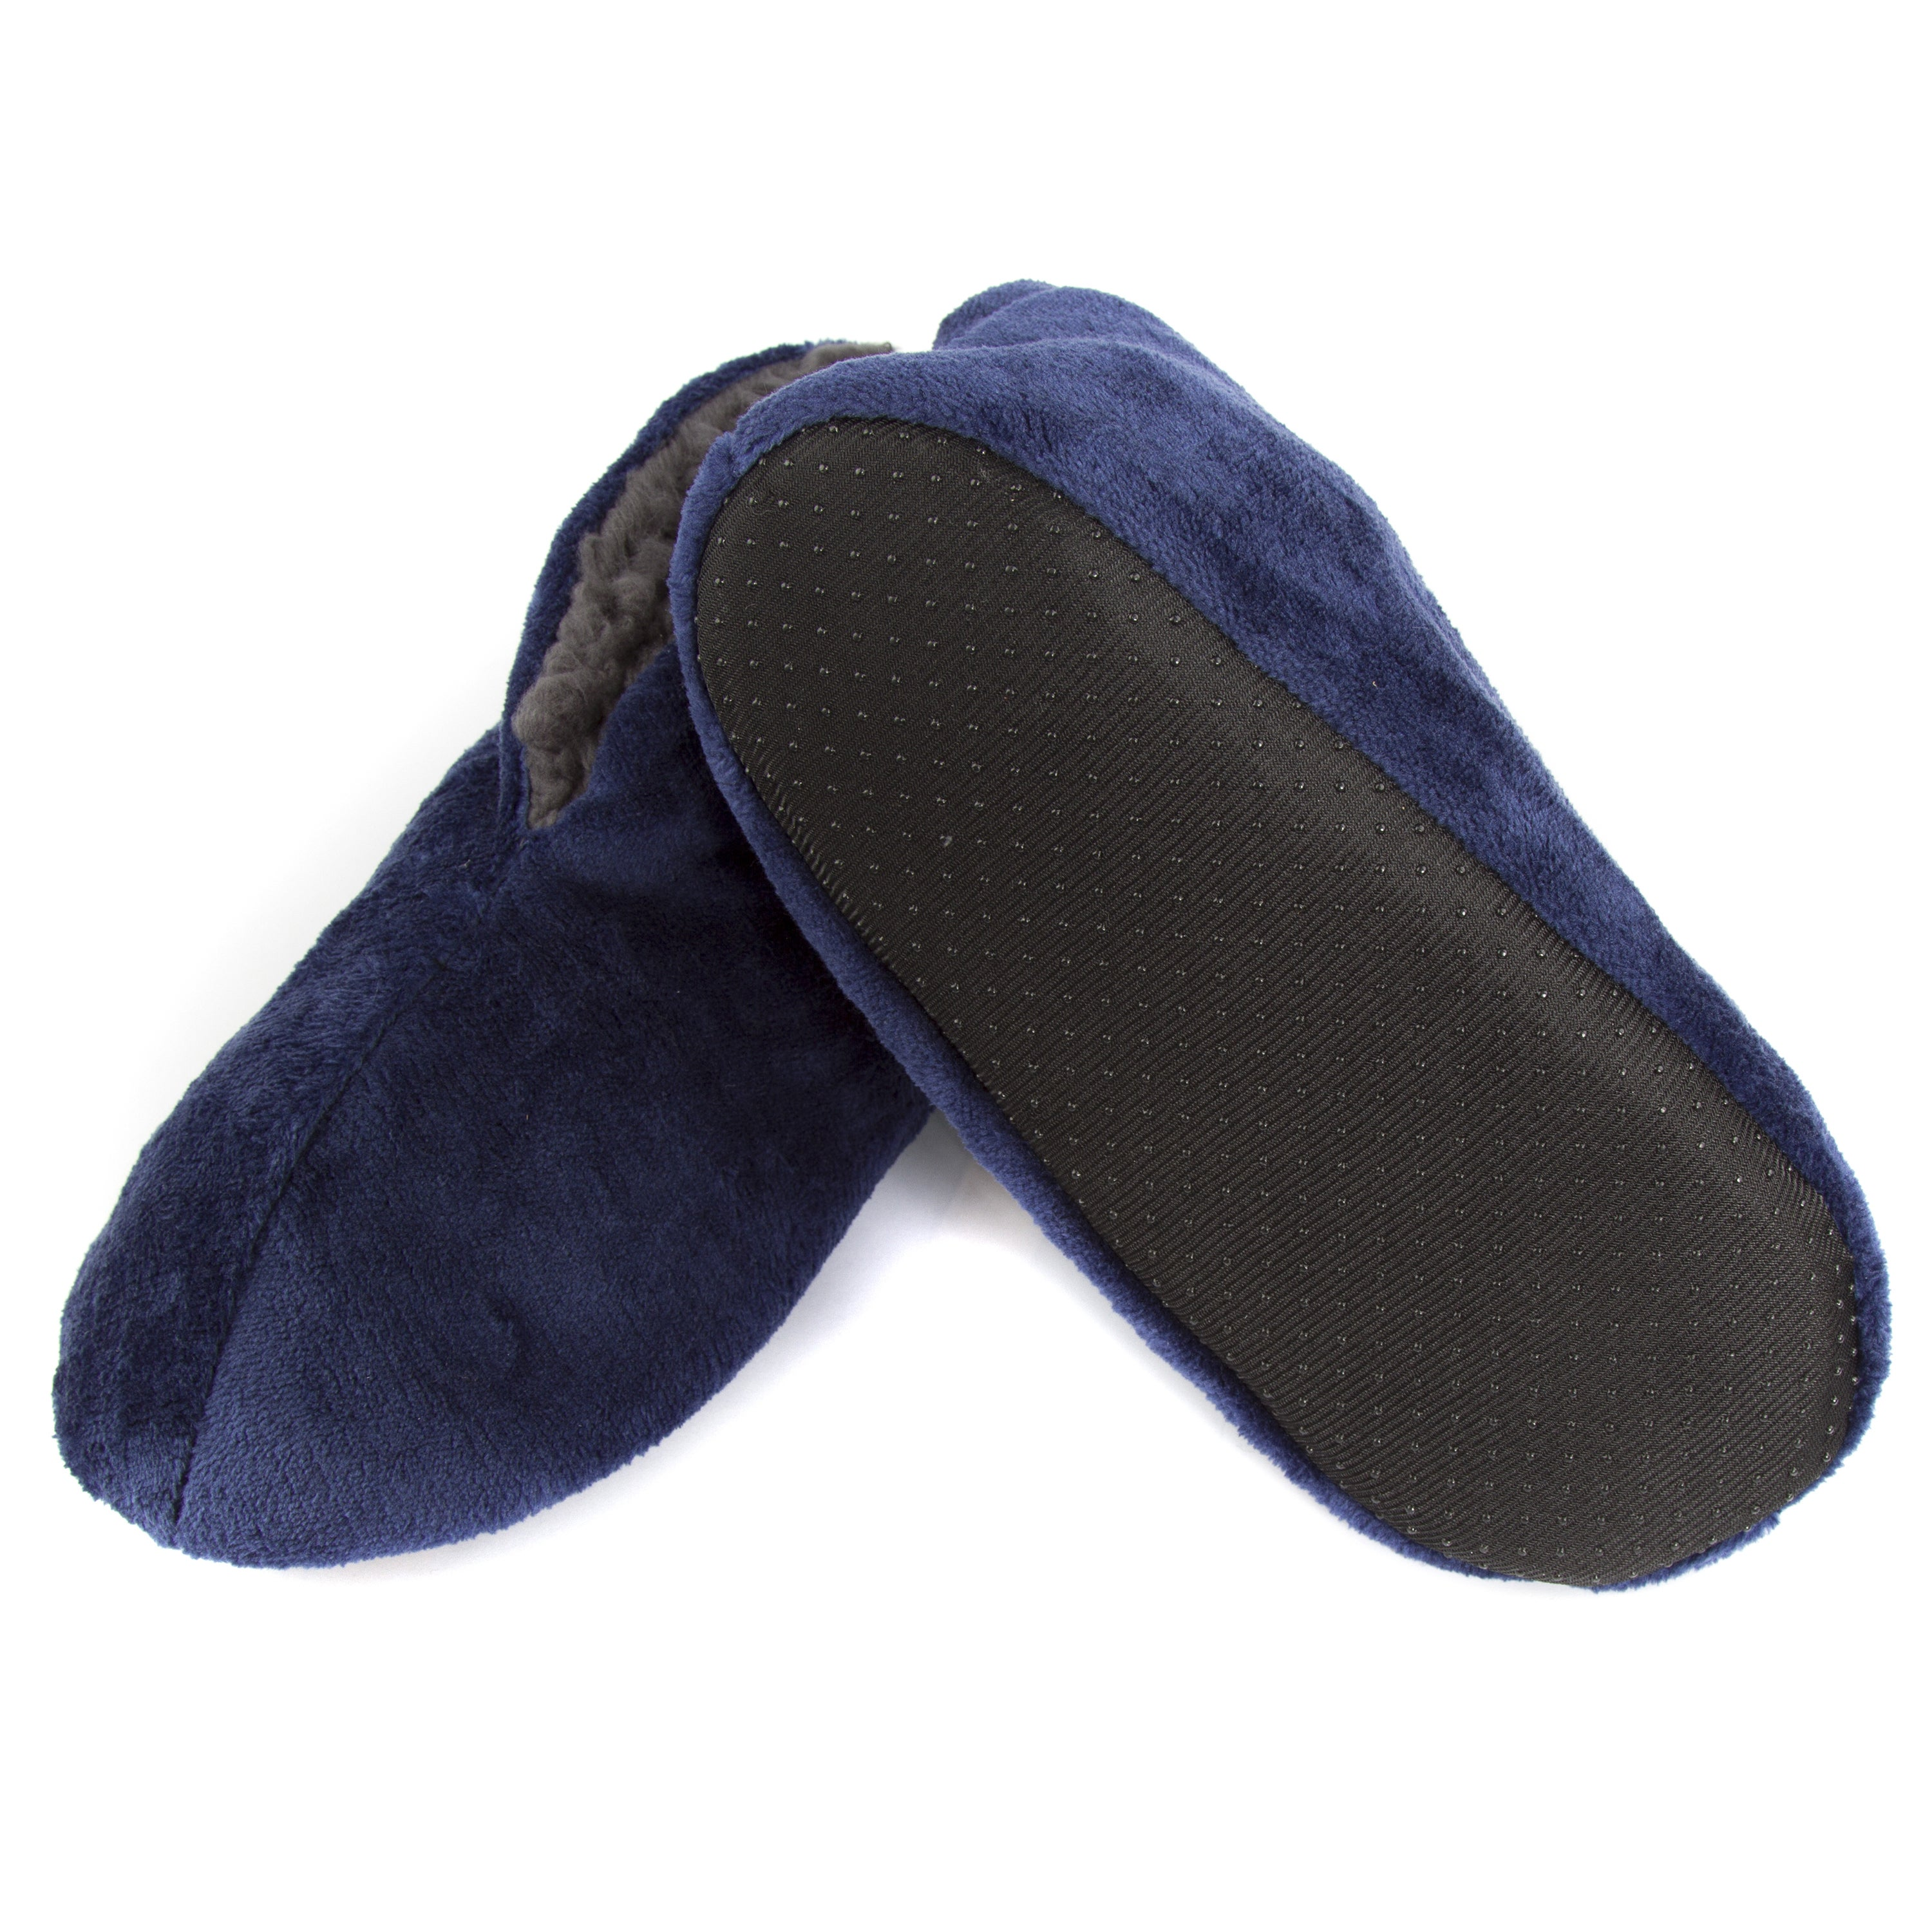 3572d99c1053 Shop Leisureland Men s Fleece Lined Cozy Bootie Slippers Solid Color - Free  Shipping On Orders Over  45 - Overstock - 10907715